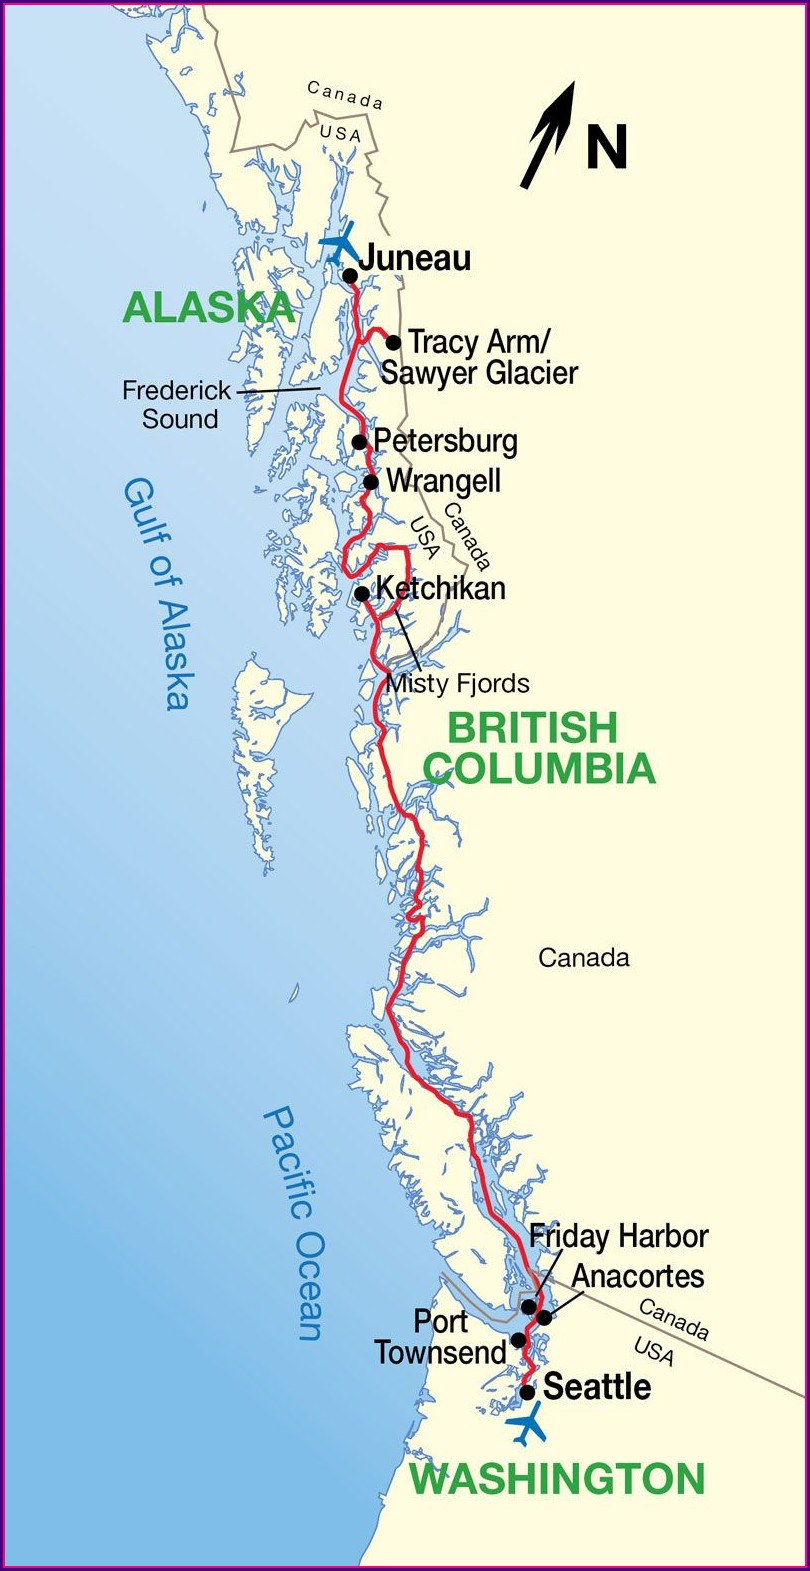 Holland America Alaska Cruise Route Map